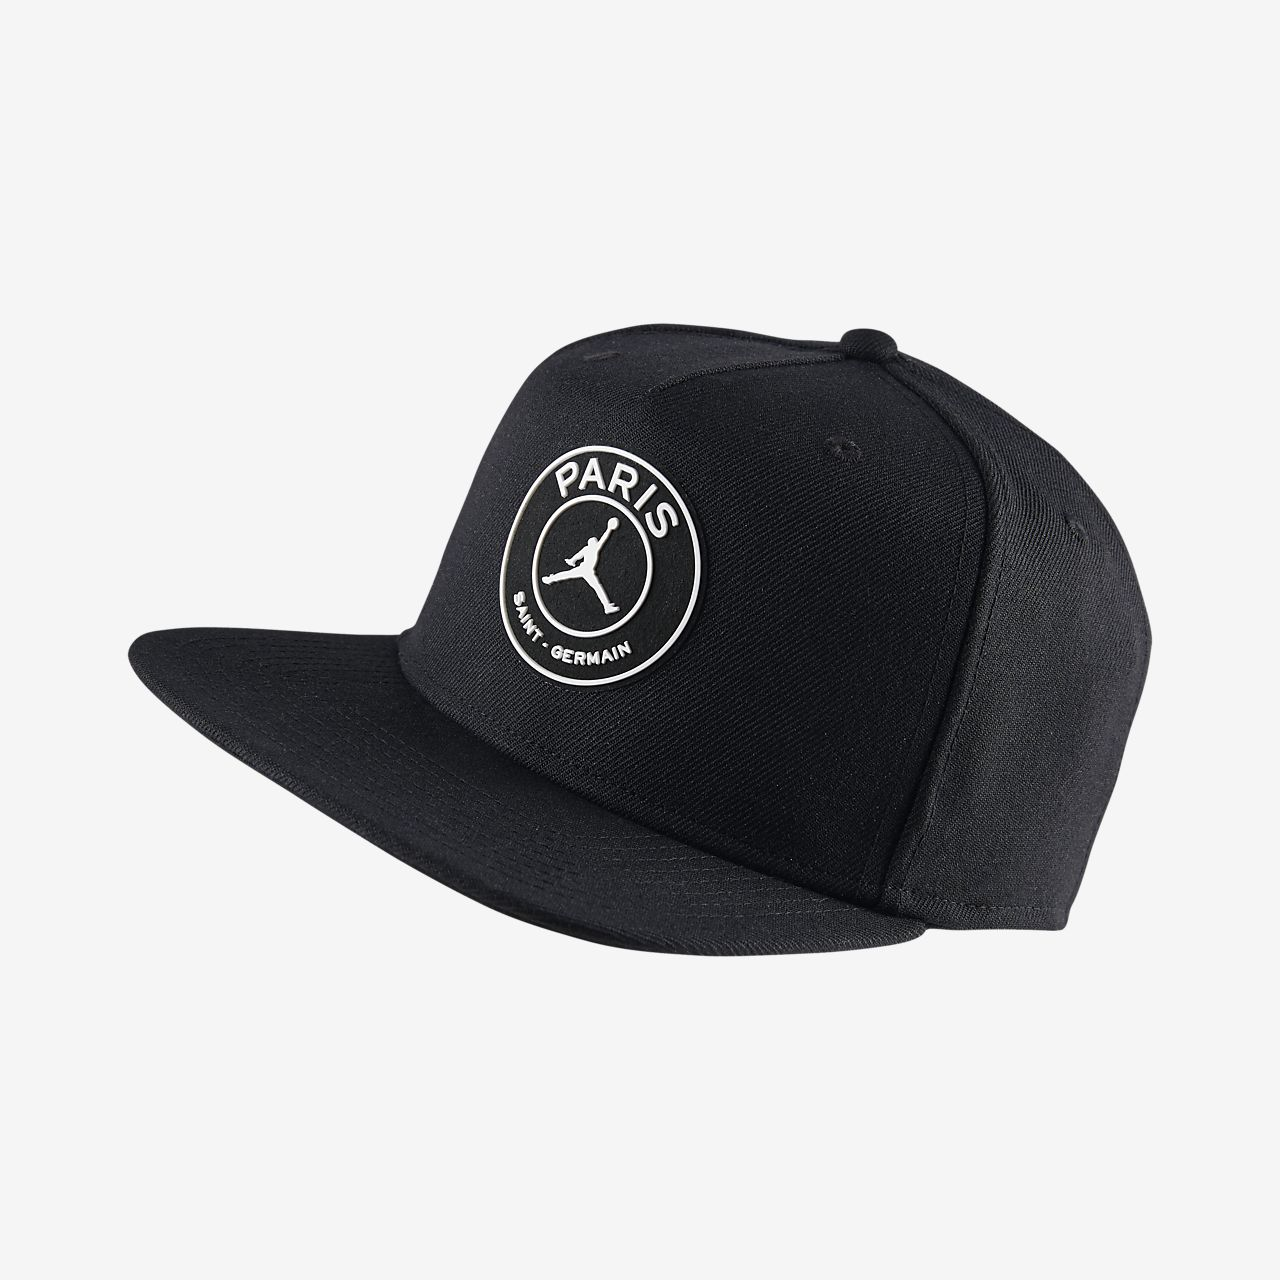 ae2e6da6593 Paris Saint-Germain Pro Adjustable Hat. Nike.com AU